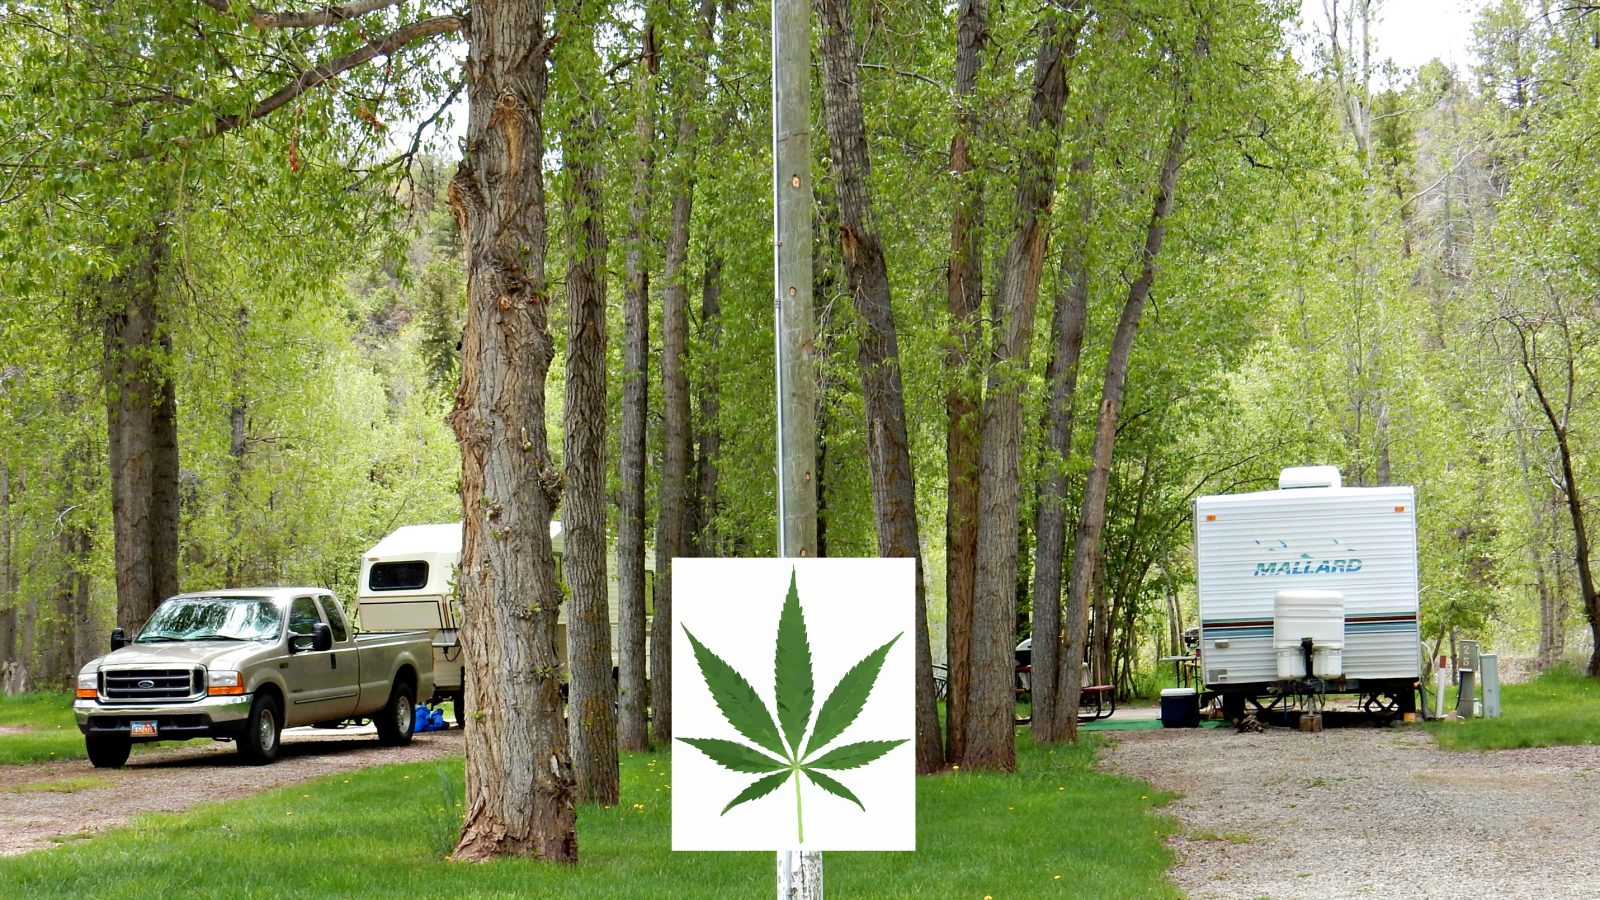 Camping in Colorado: cannibas, marjiuana, THC